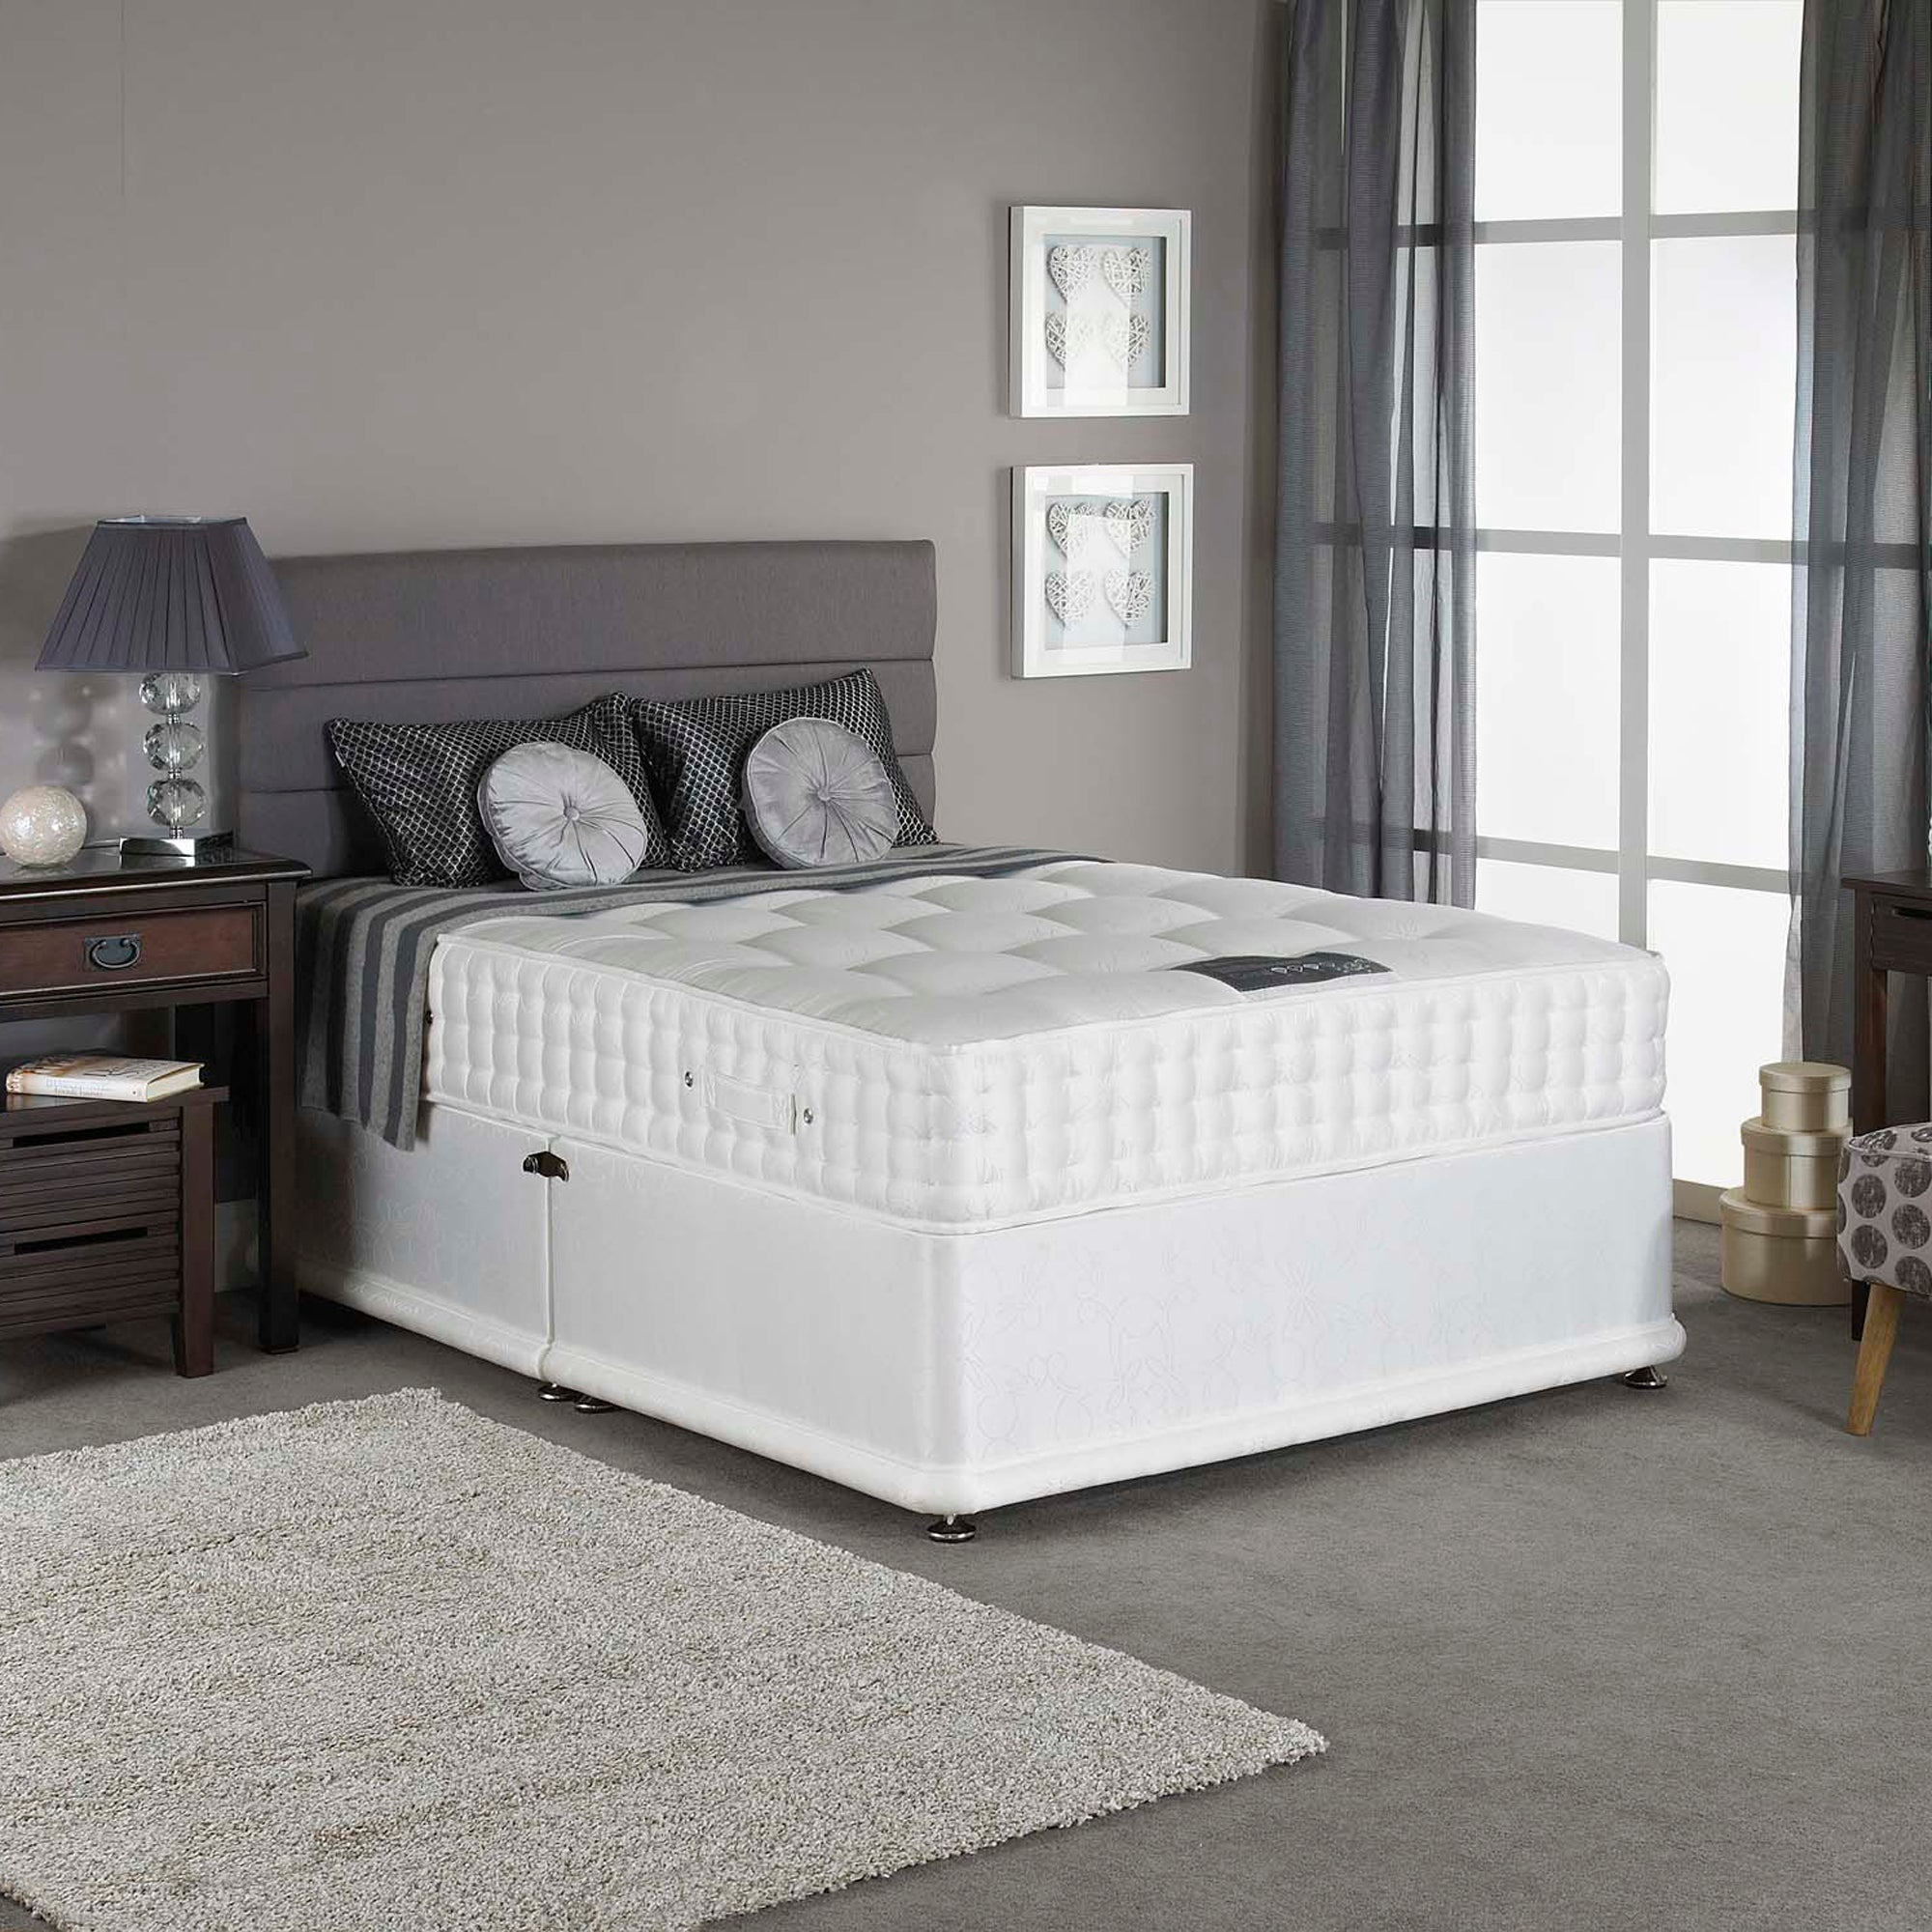 York Sprung Single Divan Set with 2 Drawers Left Side